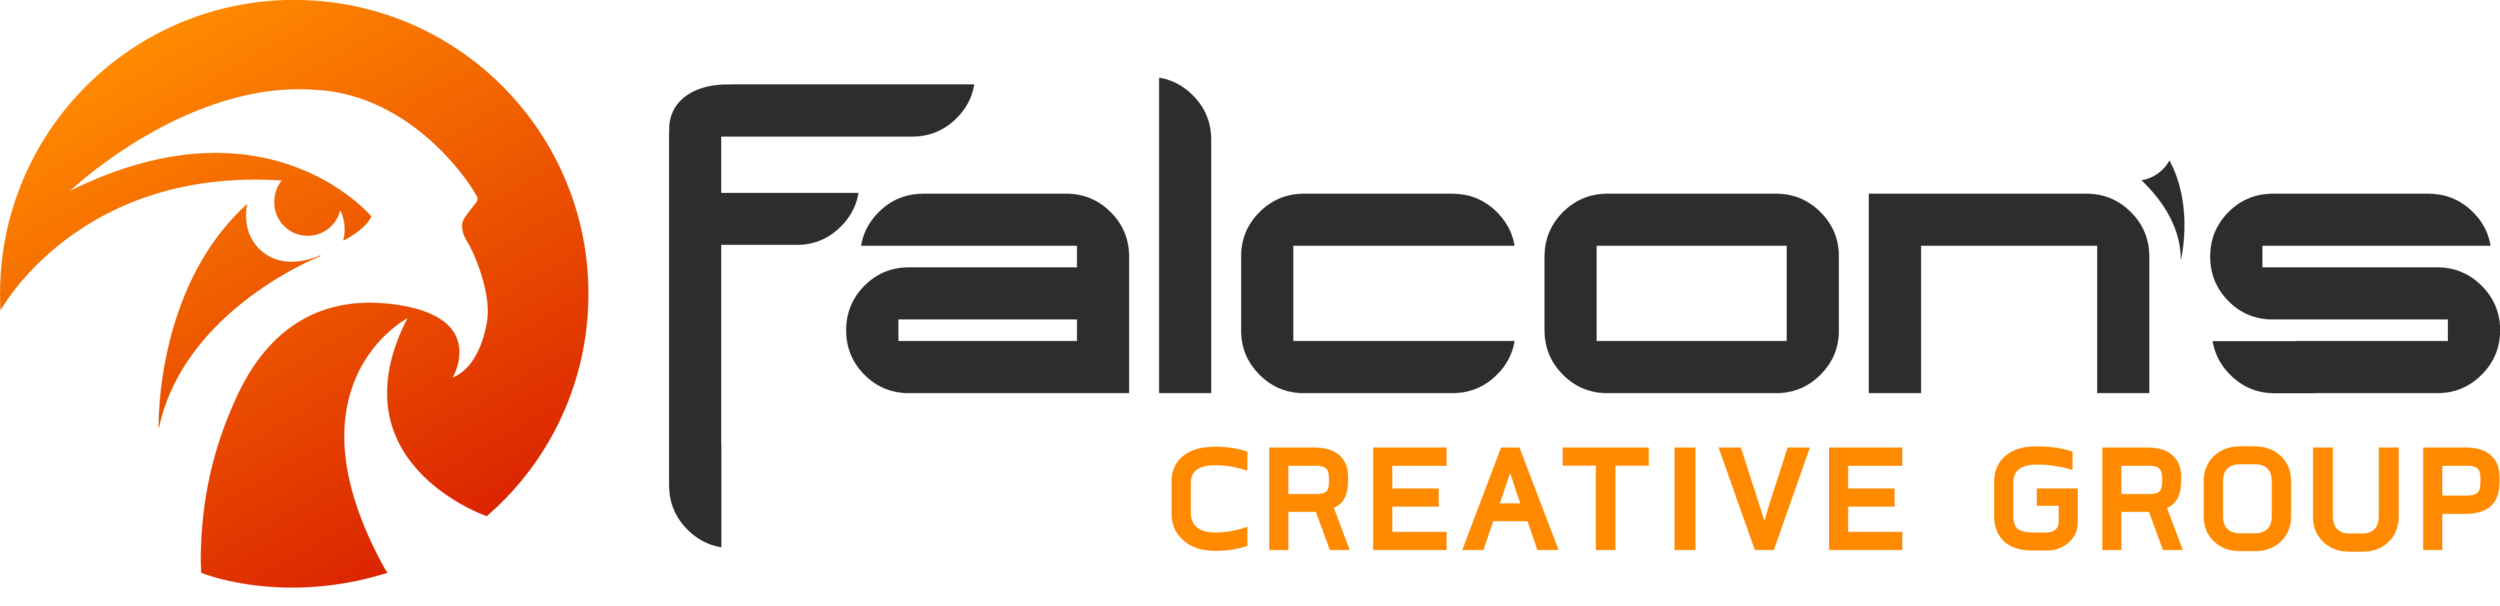 LOGO-FalconsCreative-Color-Dark.png